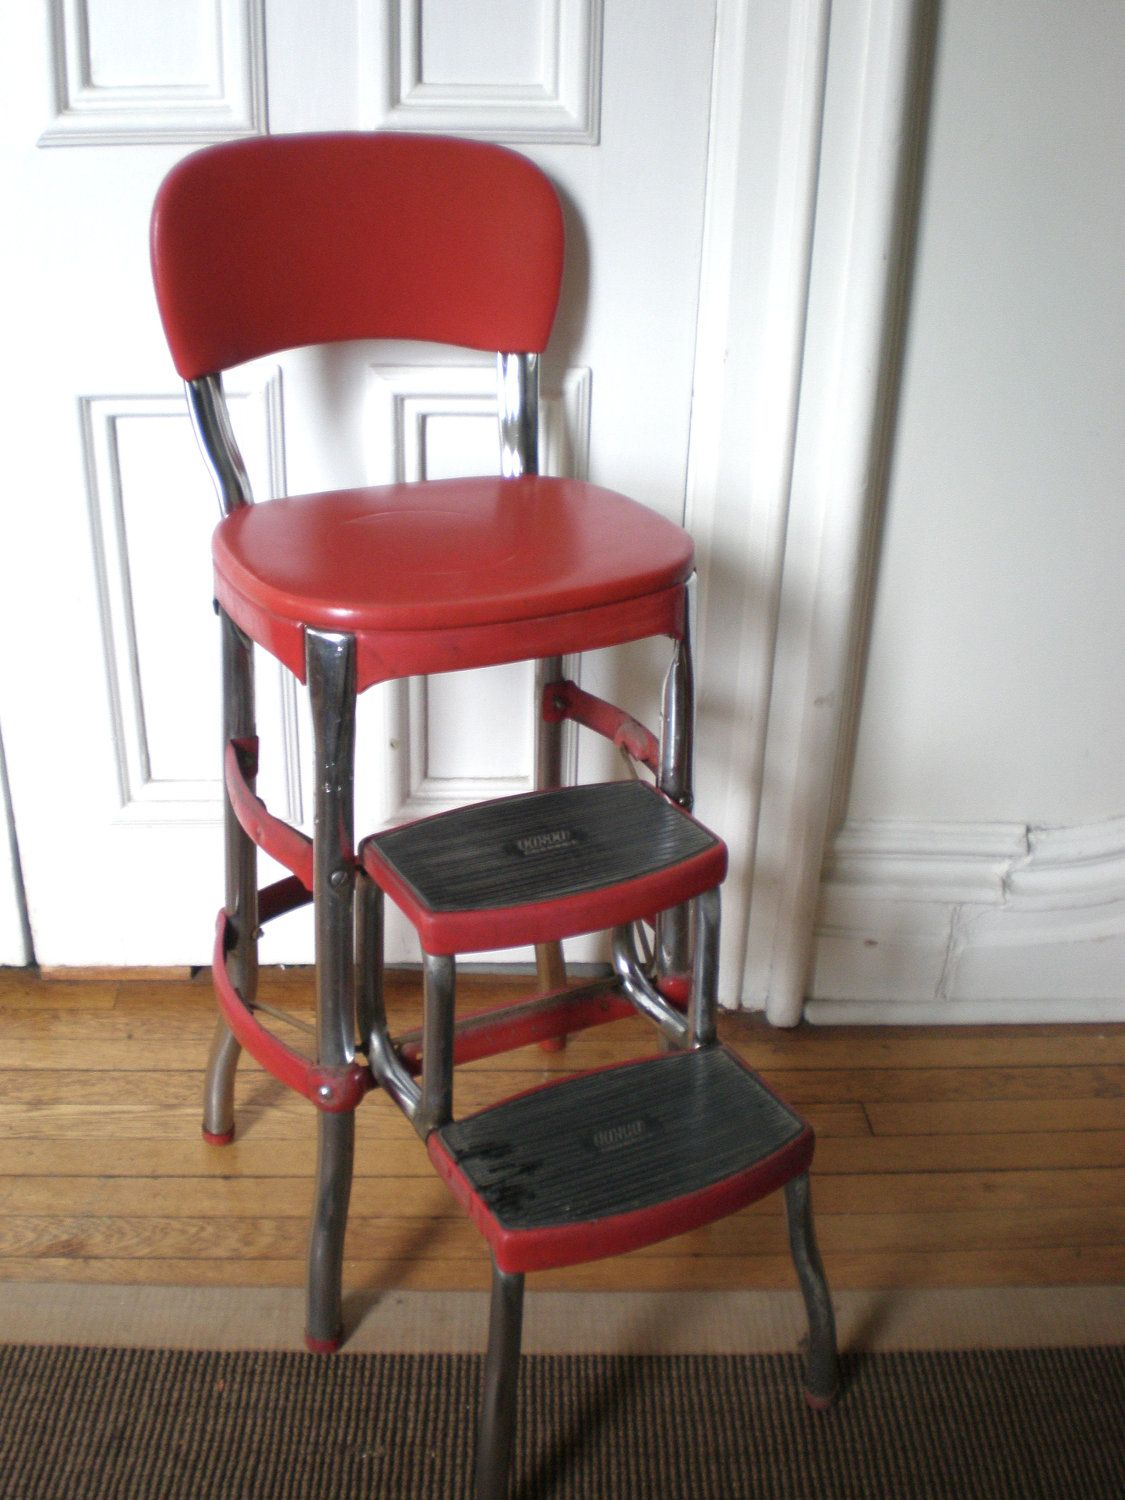 Red cosco kitchen chair with step stool just like the one